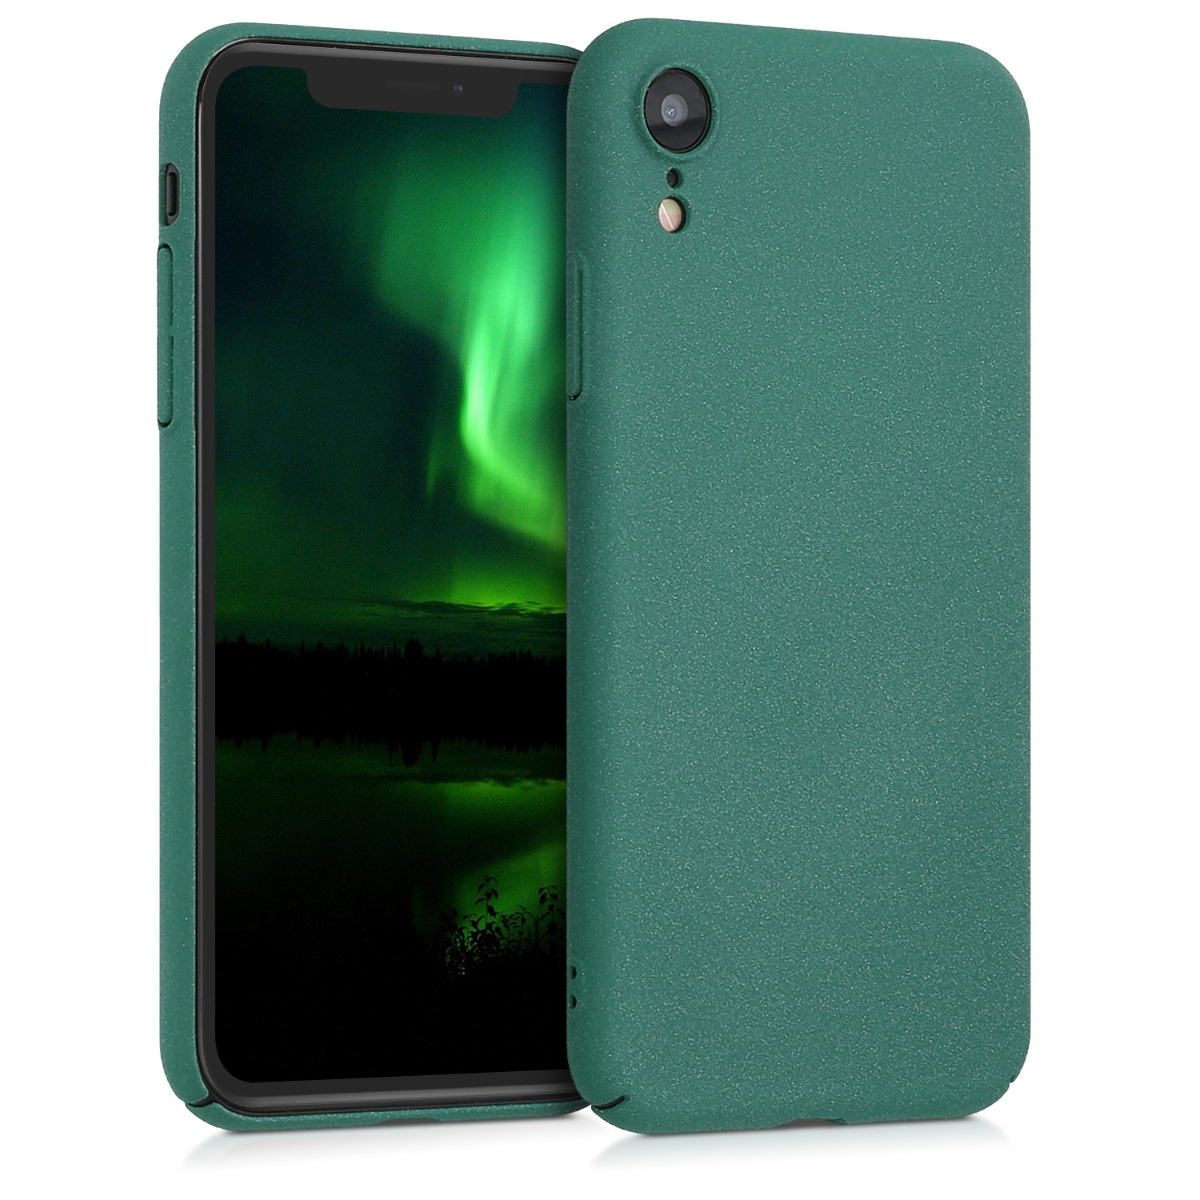 KW Σκληρή Θήκη Apple iPhone XR - Metallic Teal (47642.14)